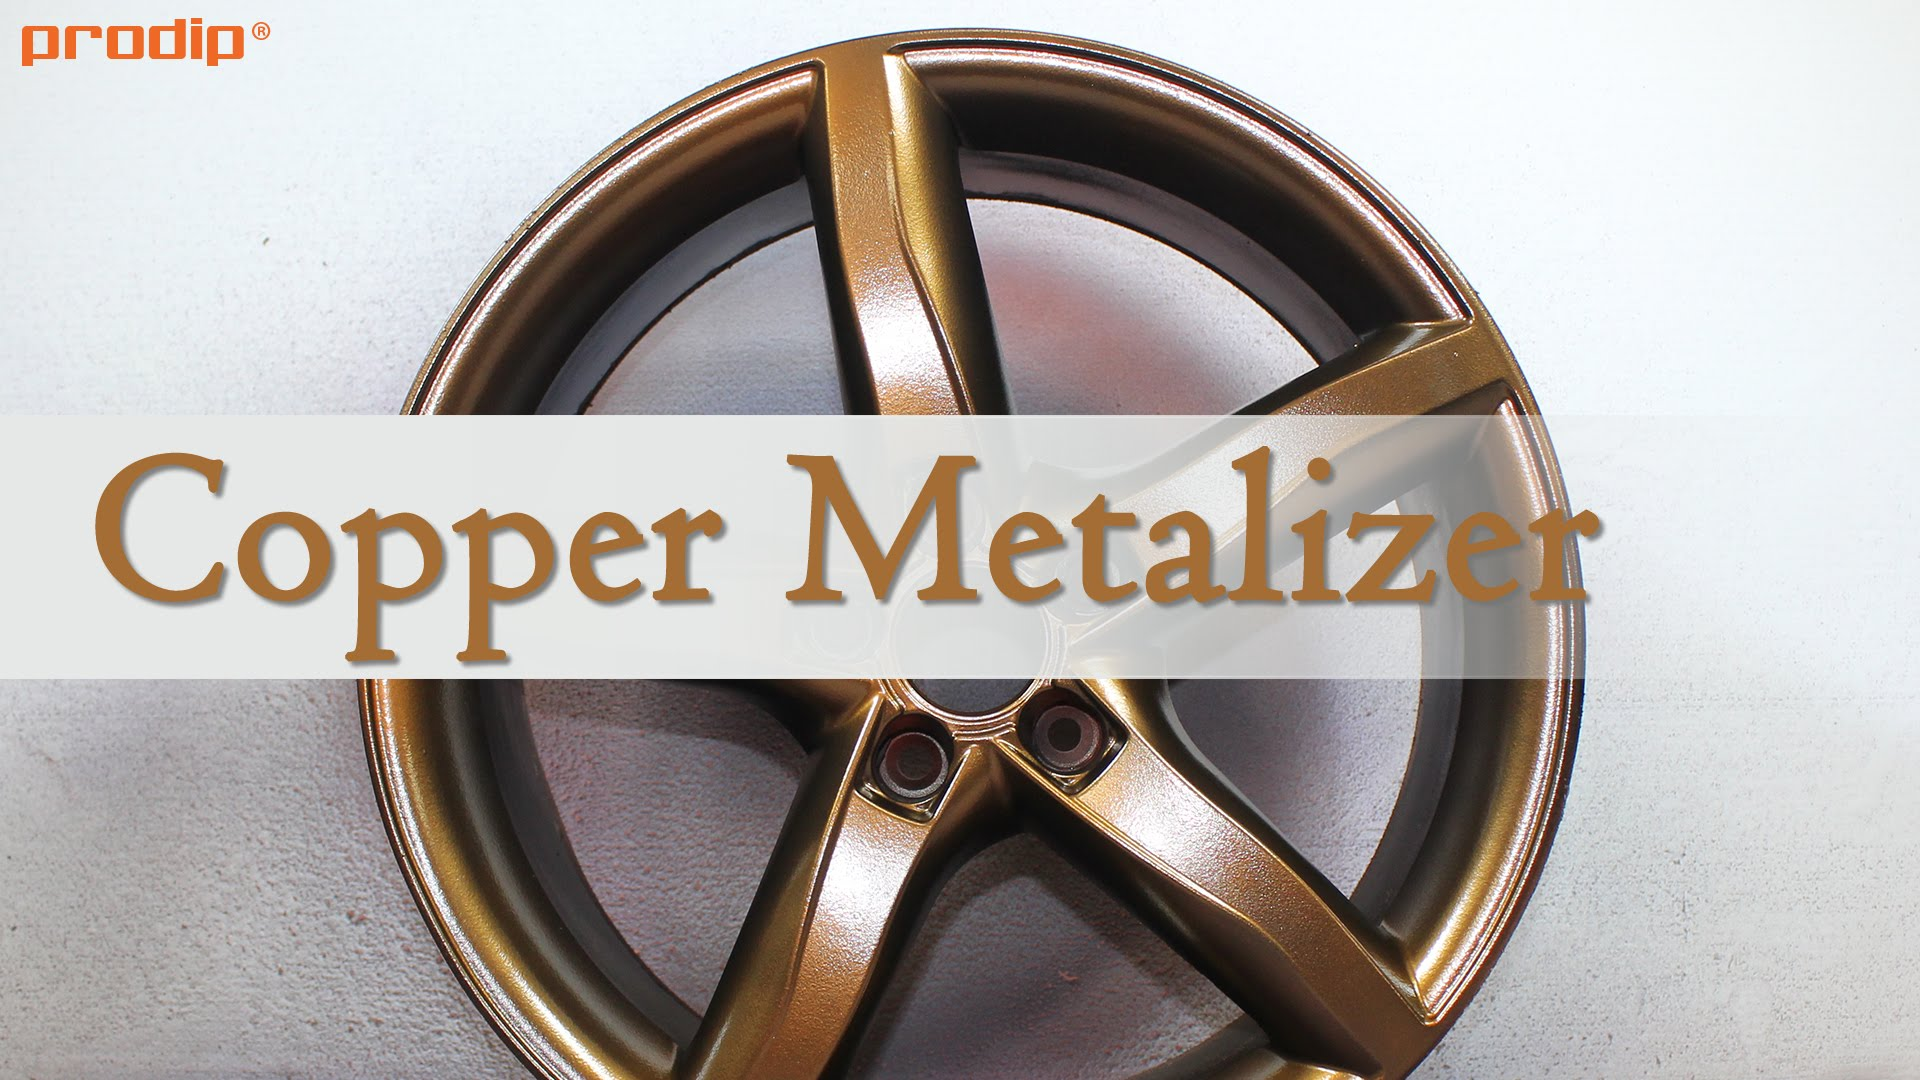 Copper Metalizer